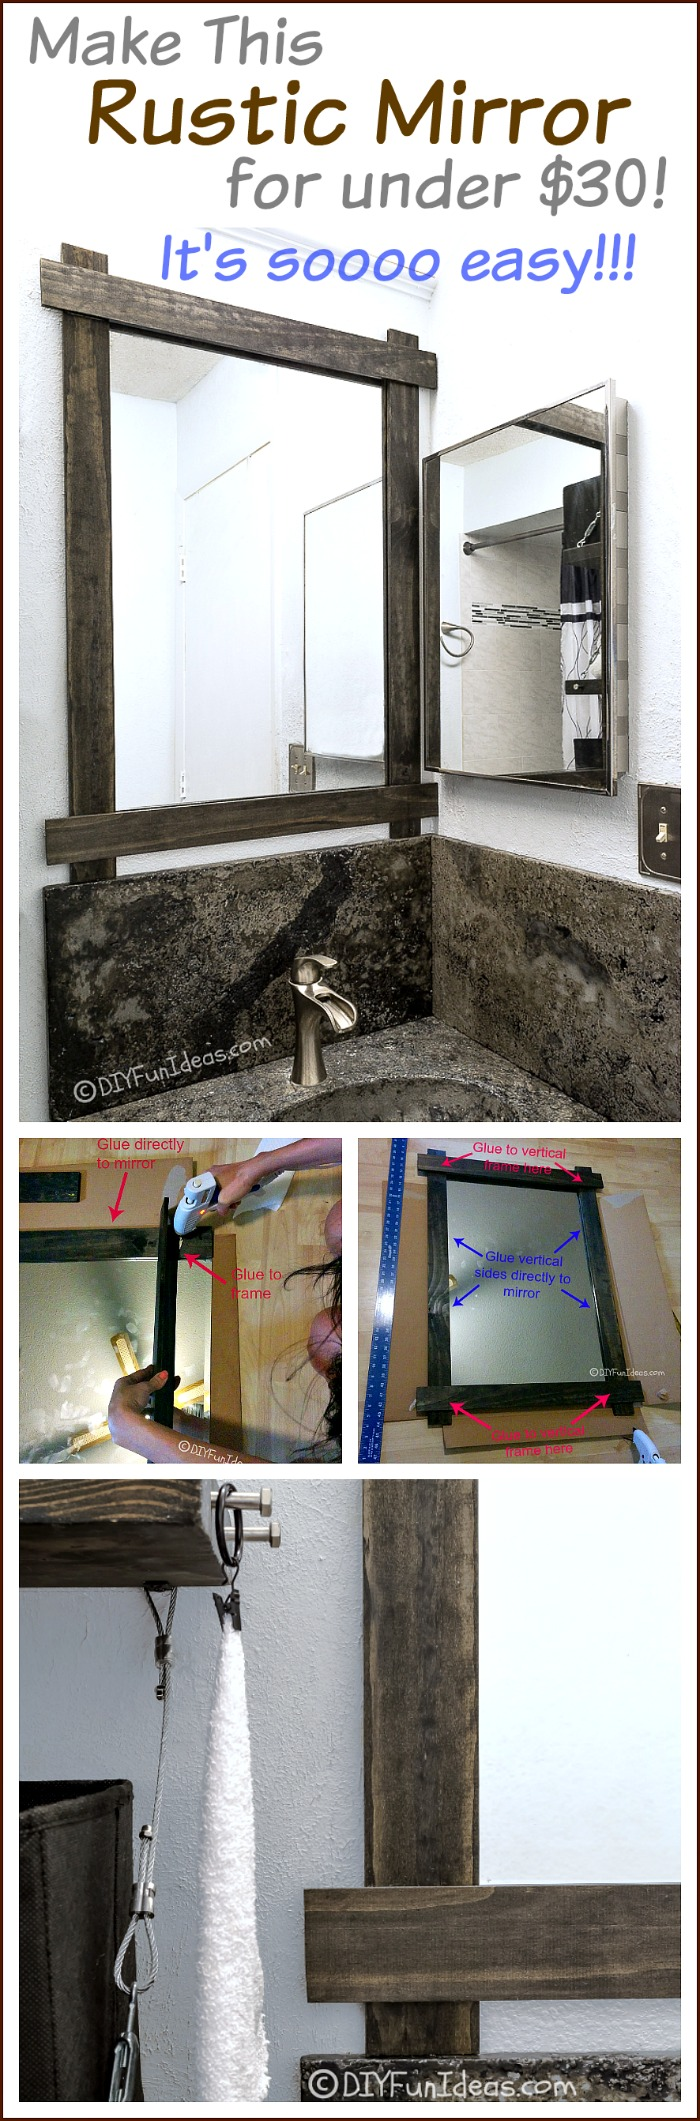 MUST SAVE THIS MIRROR UPDATE!! So easy and inexpensive to customize a mirror for a cool rustic look. Just need some slabs of wood and glue. Really it's that easy!